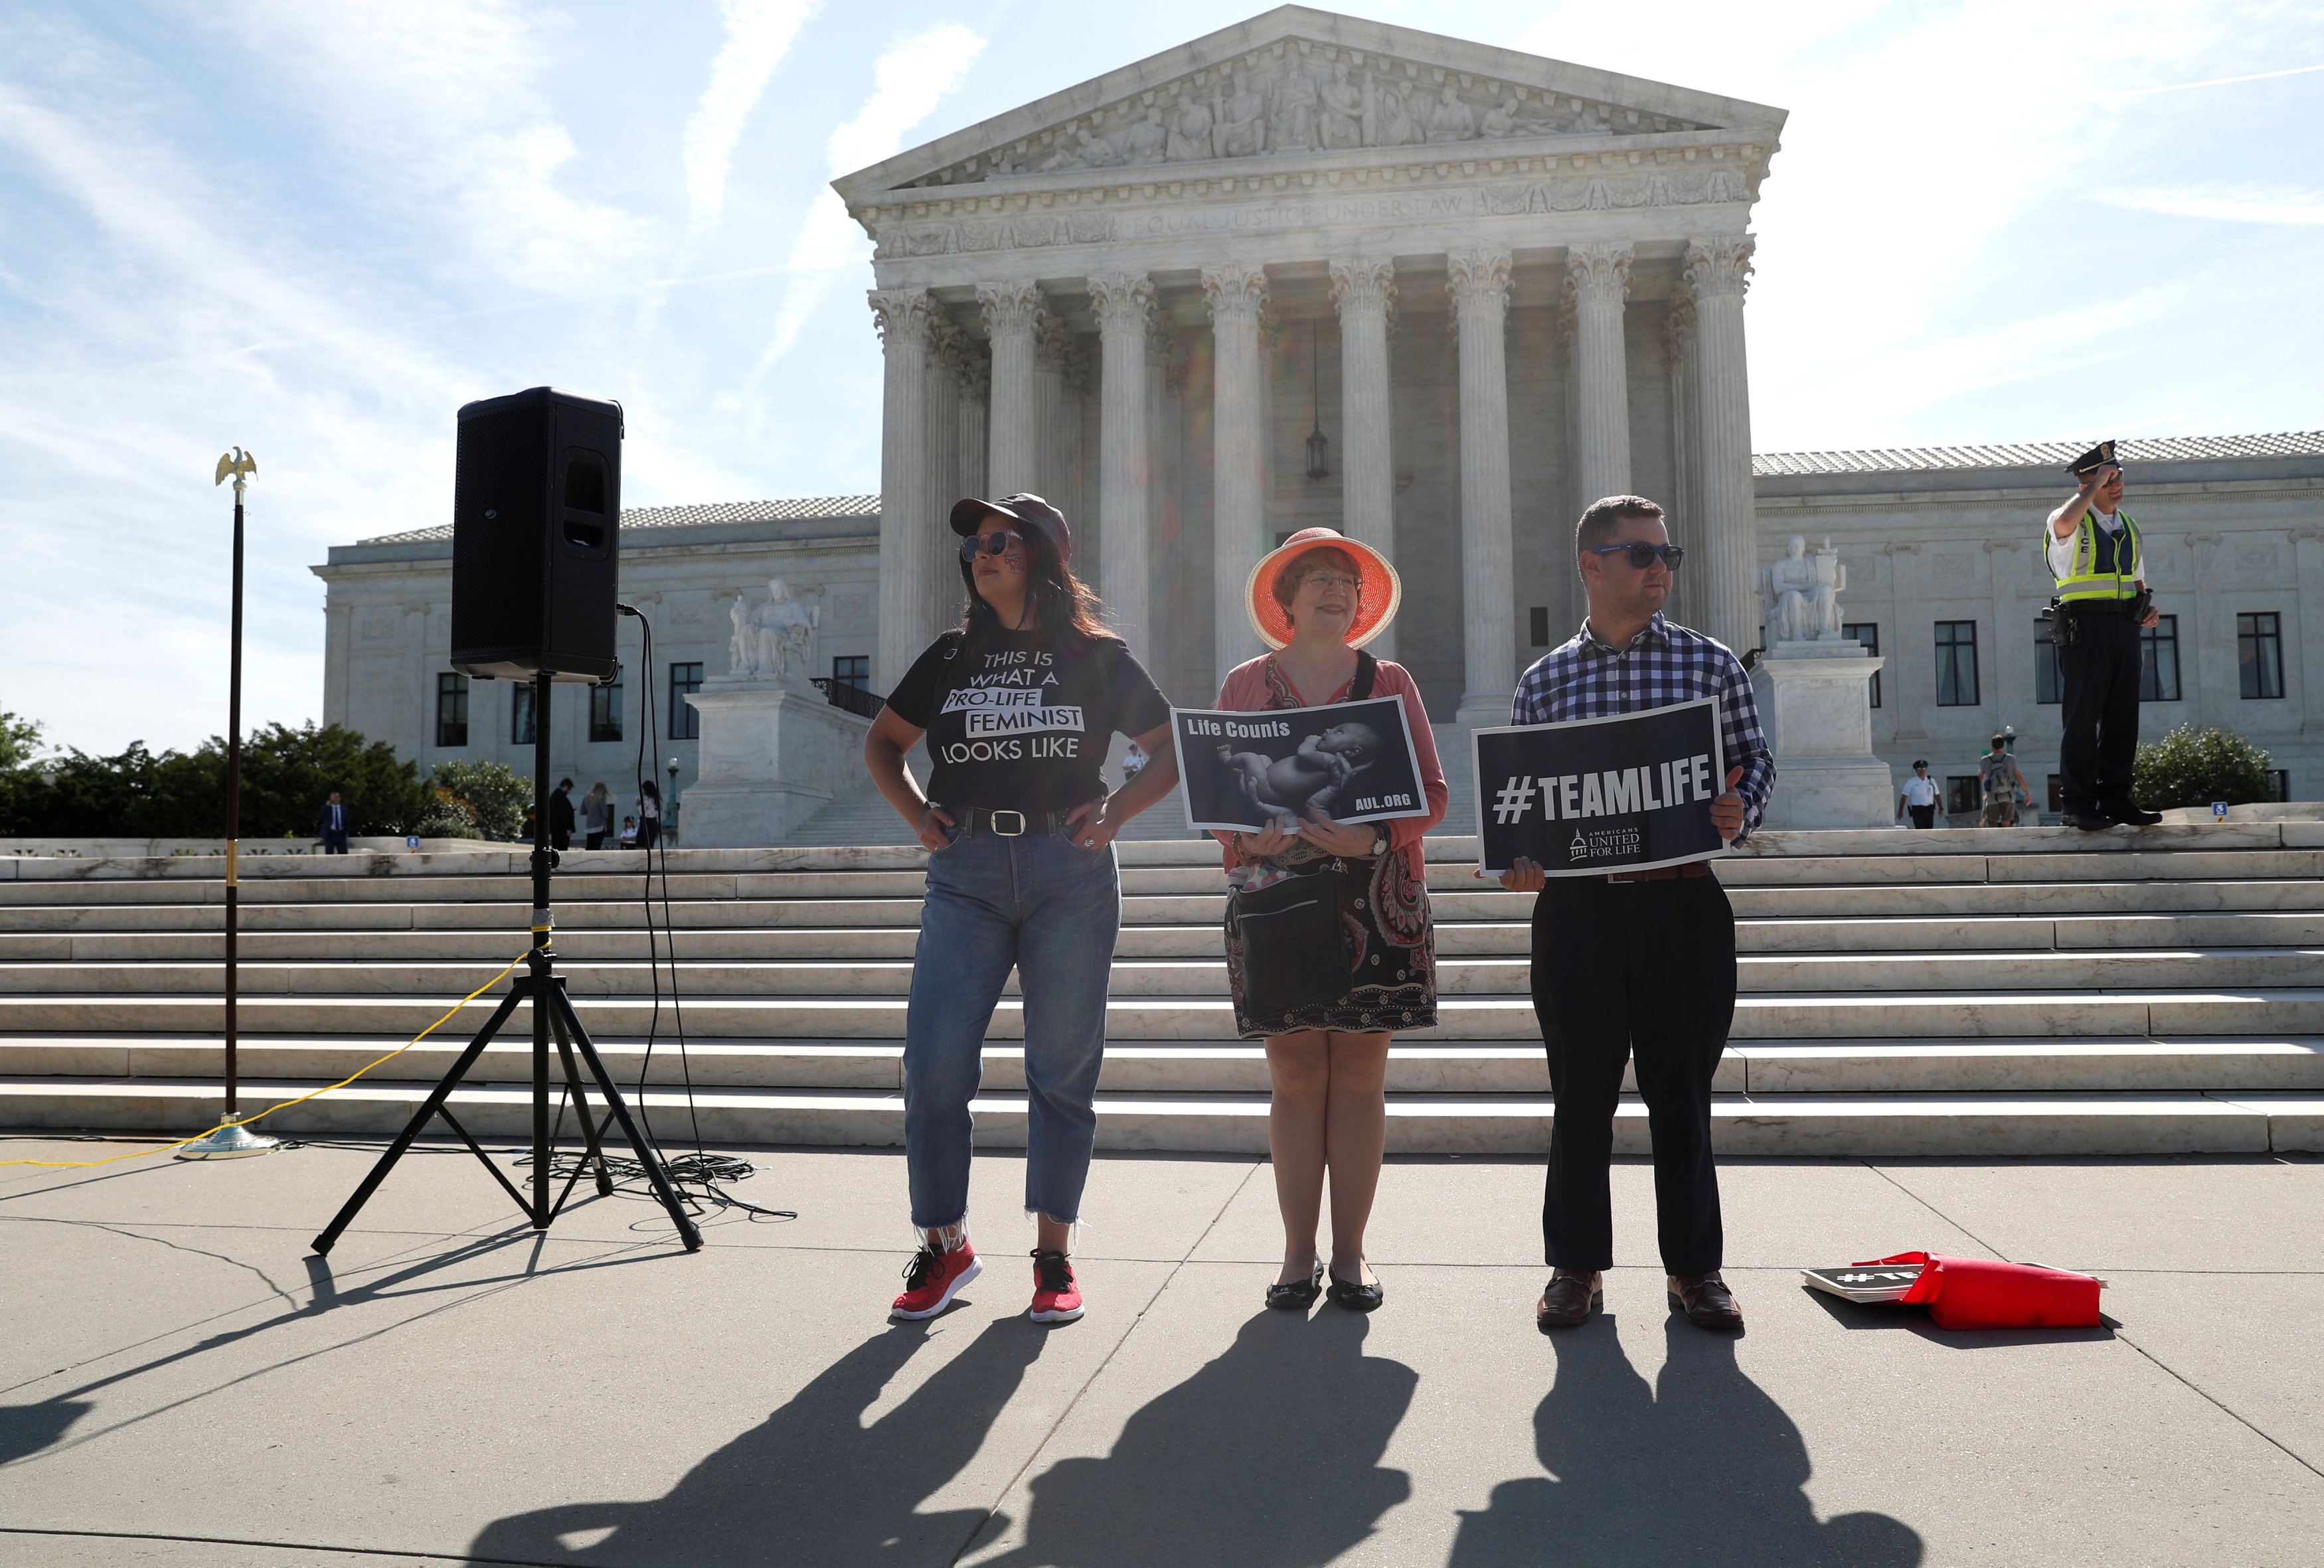 Anti-abortion activists (L-R) Terrisa Bukovinac, Megan Lott and Peter Hinman stand outside of the U.S. Supreme Court in Washington, U.S., June 26, 2018. REUTERS/Leah Millis